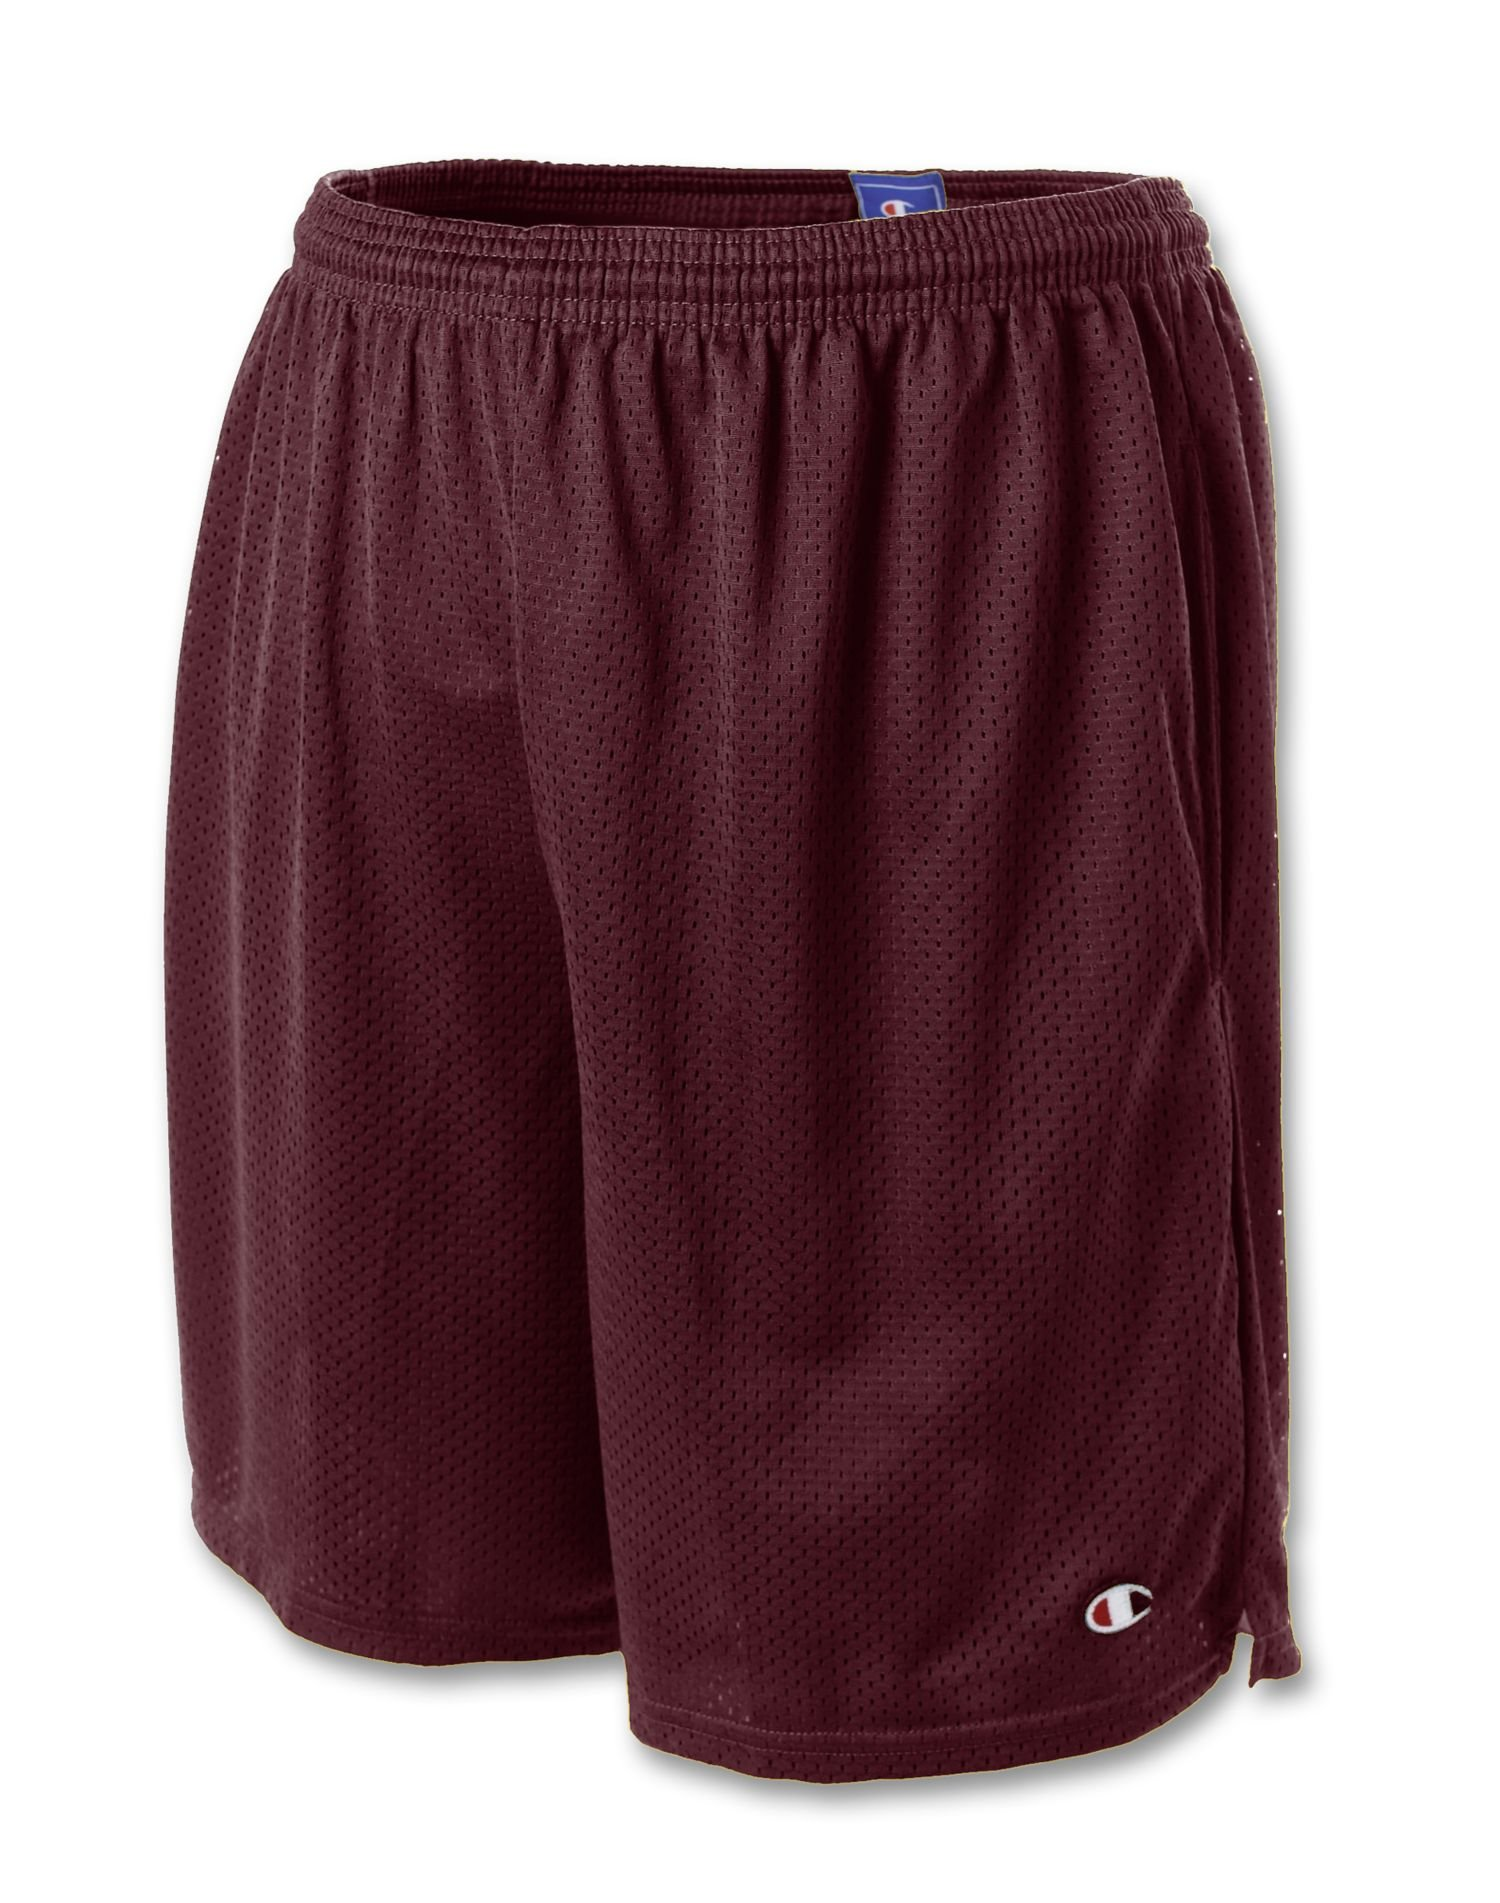 Champion Men's Long Mesh Short with Pockets,Granite Heather,XXX-Large by Champion